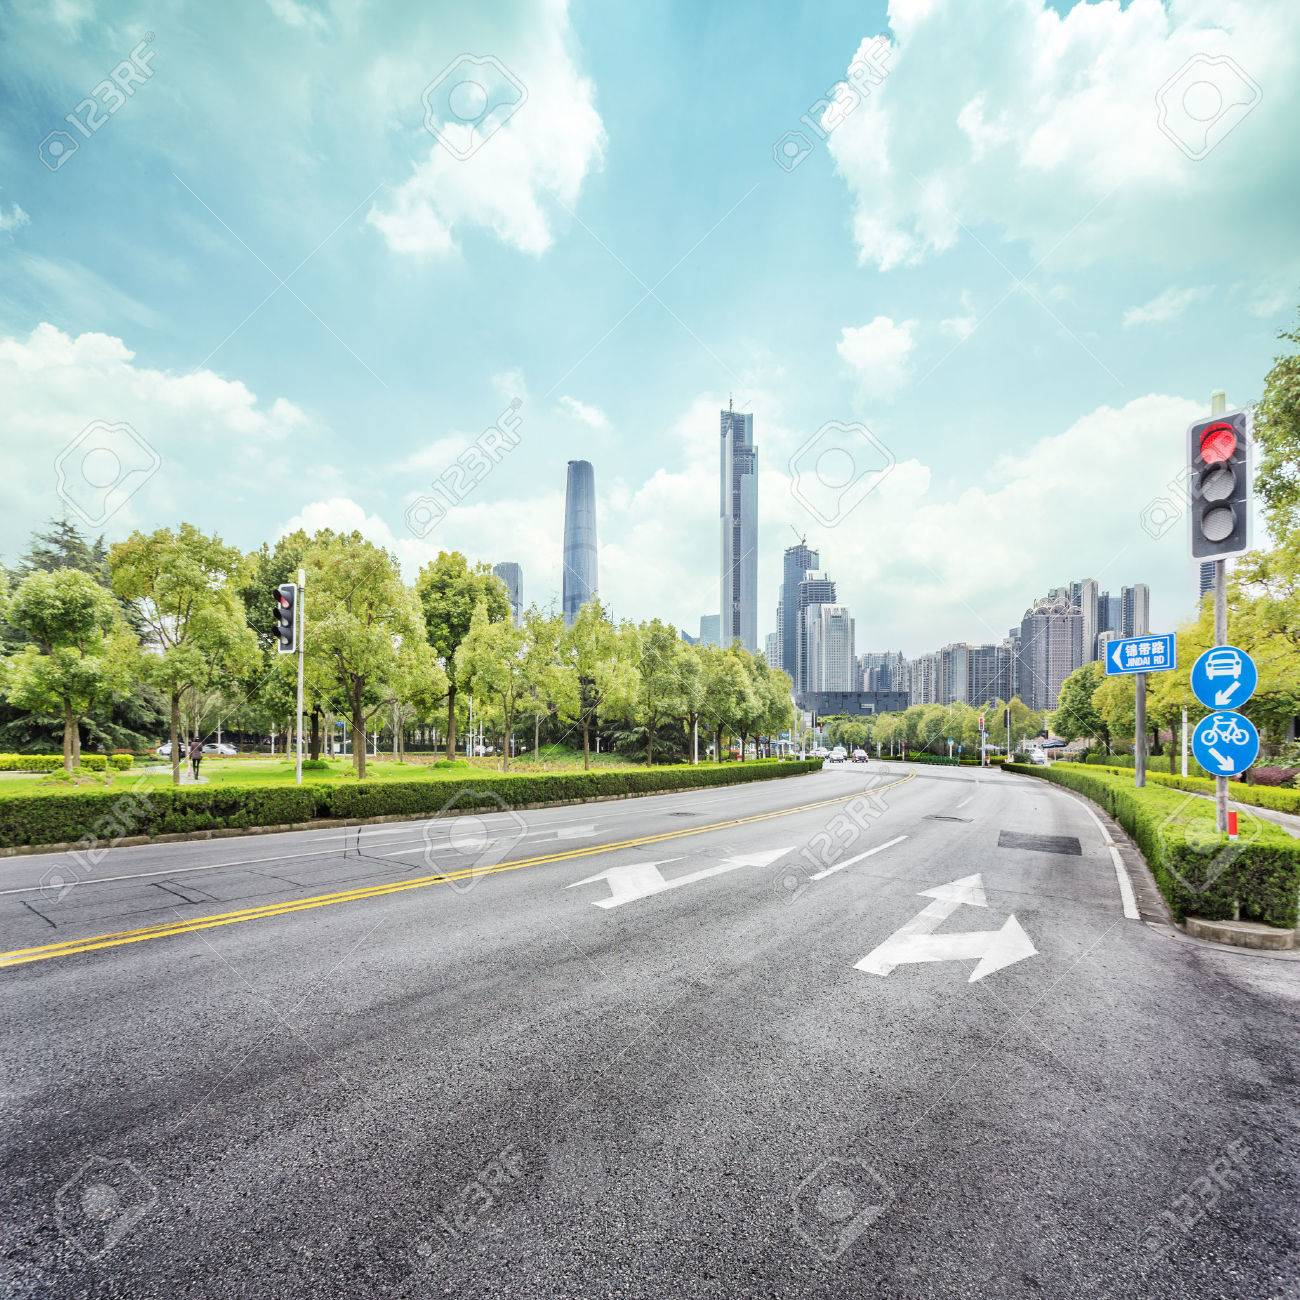 empty street with trees aside and skyscrapers as background - 45548657